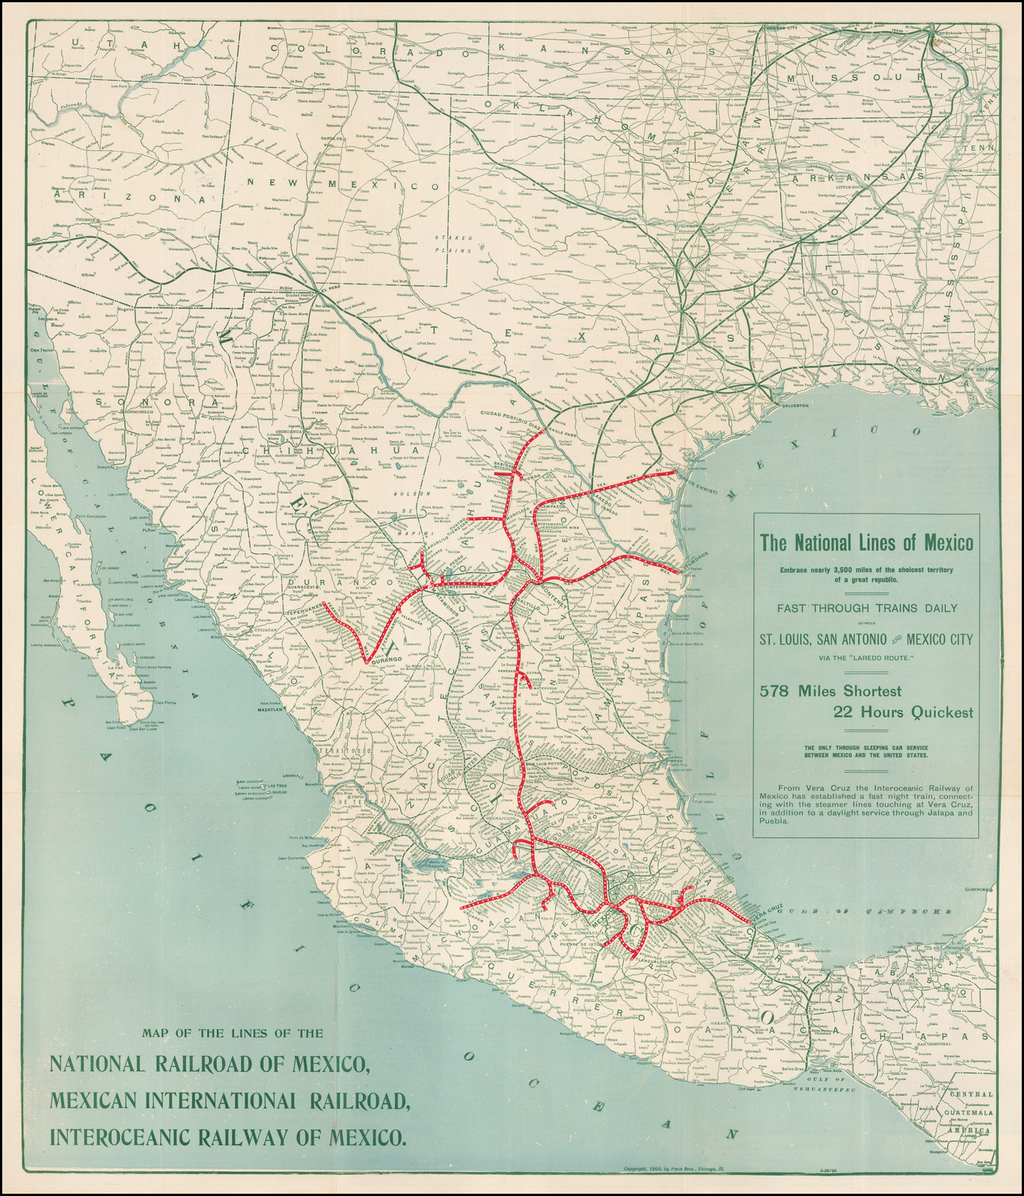 Map of the Lines of the National Railroad of Mexico, Mexican International Railroad, Interoceanic Railway of Mexico. By Poole Brothers